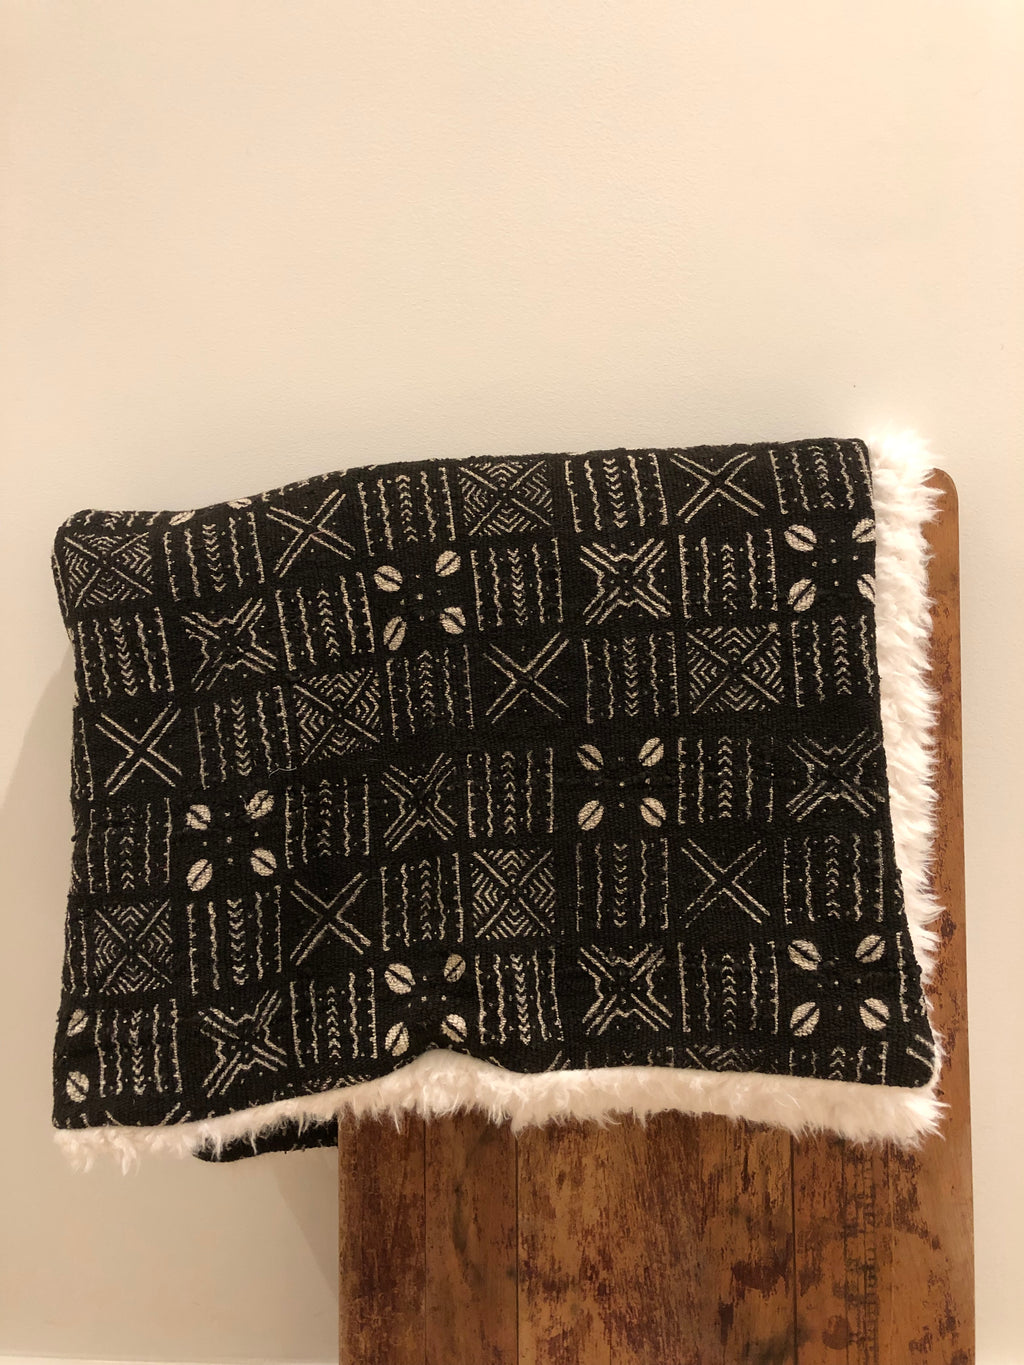 West African Mud Cloth Blankets